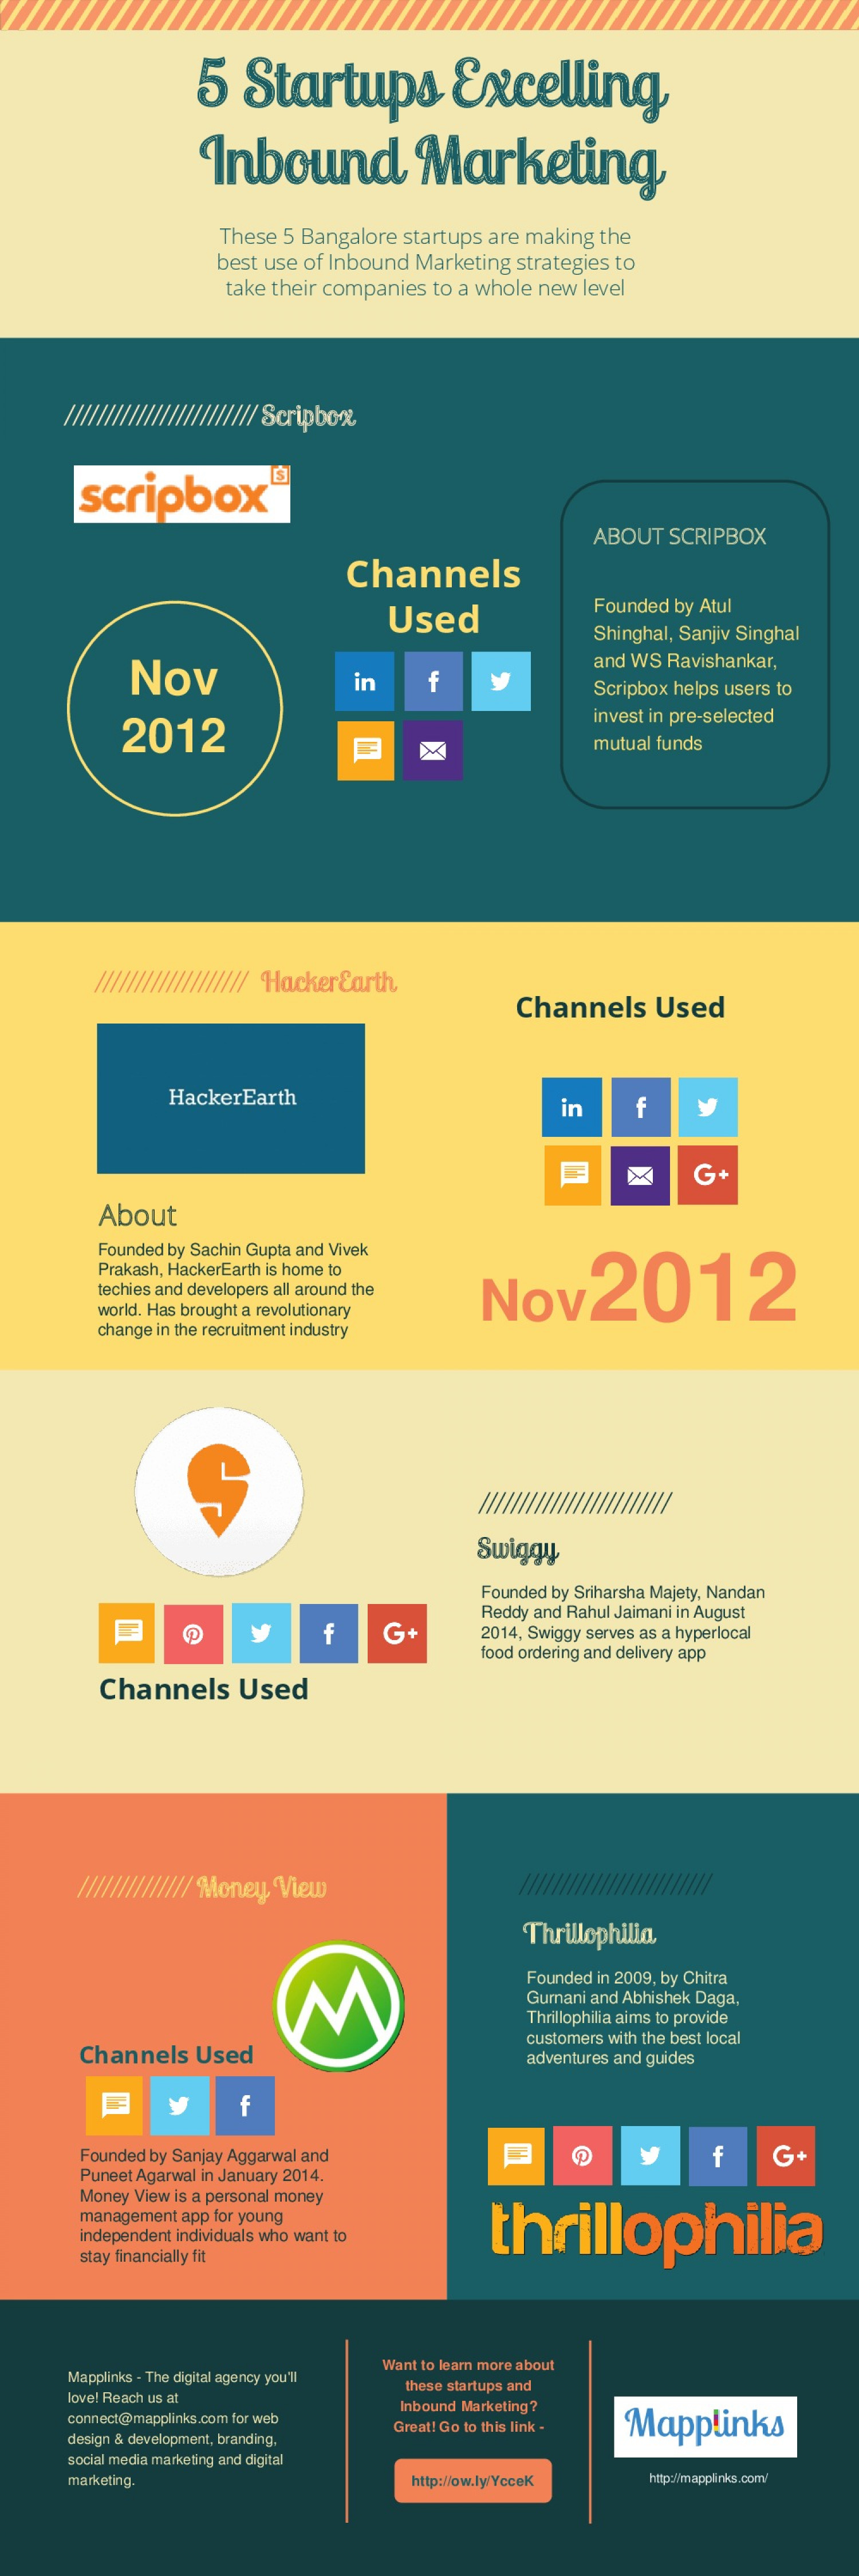 5 Startups in Bangalore Excelling in Inbound Marketing Infographic